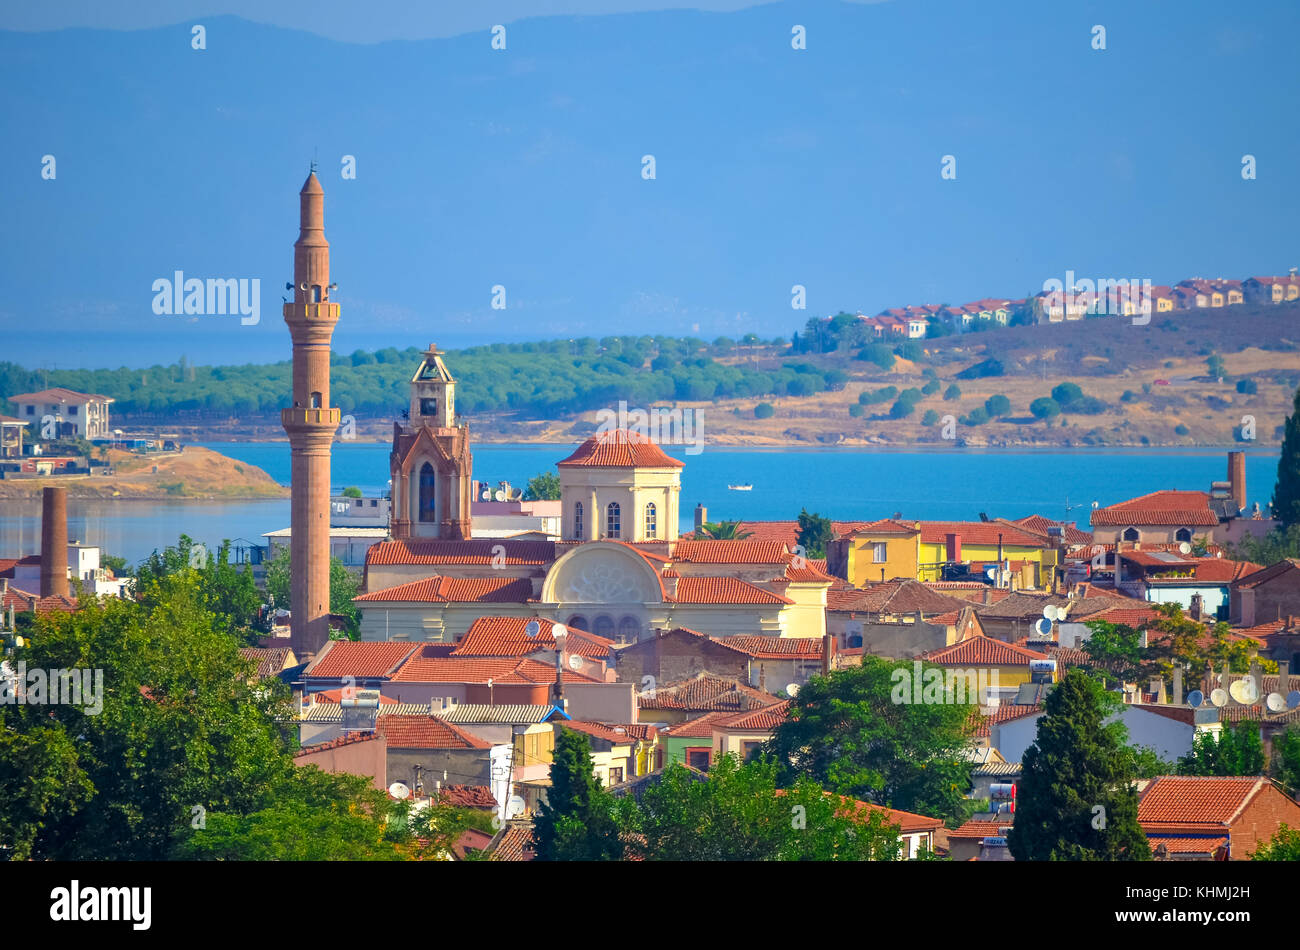 View above the roofs of the town of Ayvalik and moschonisia islands, Turkey. - Stock Image